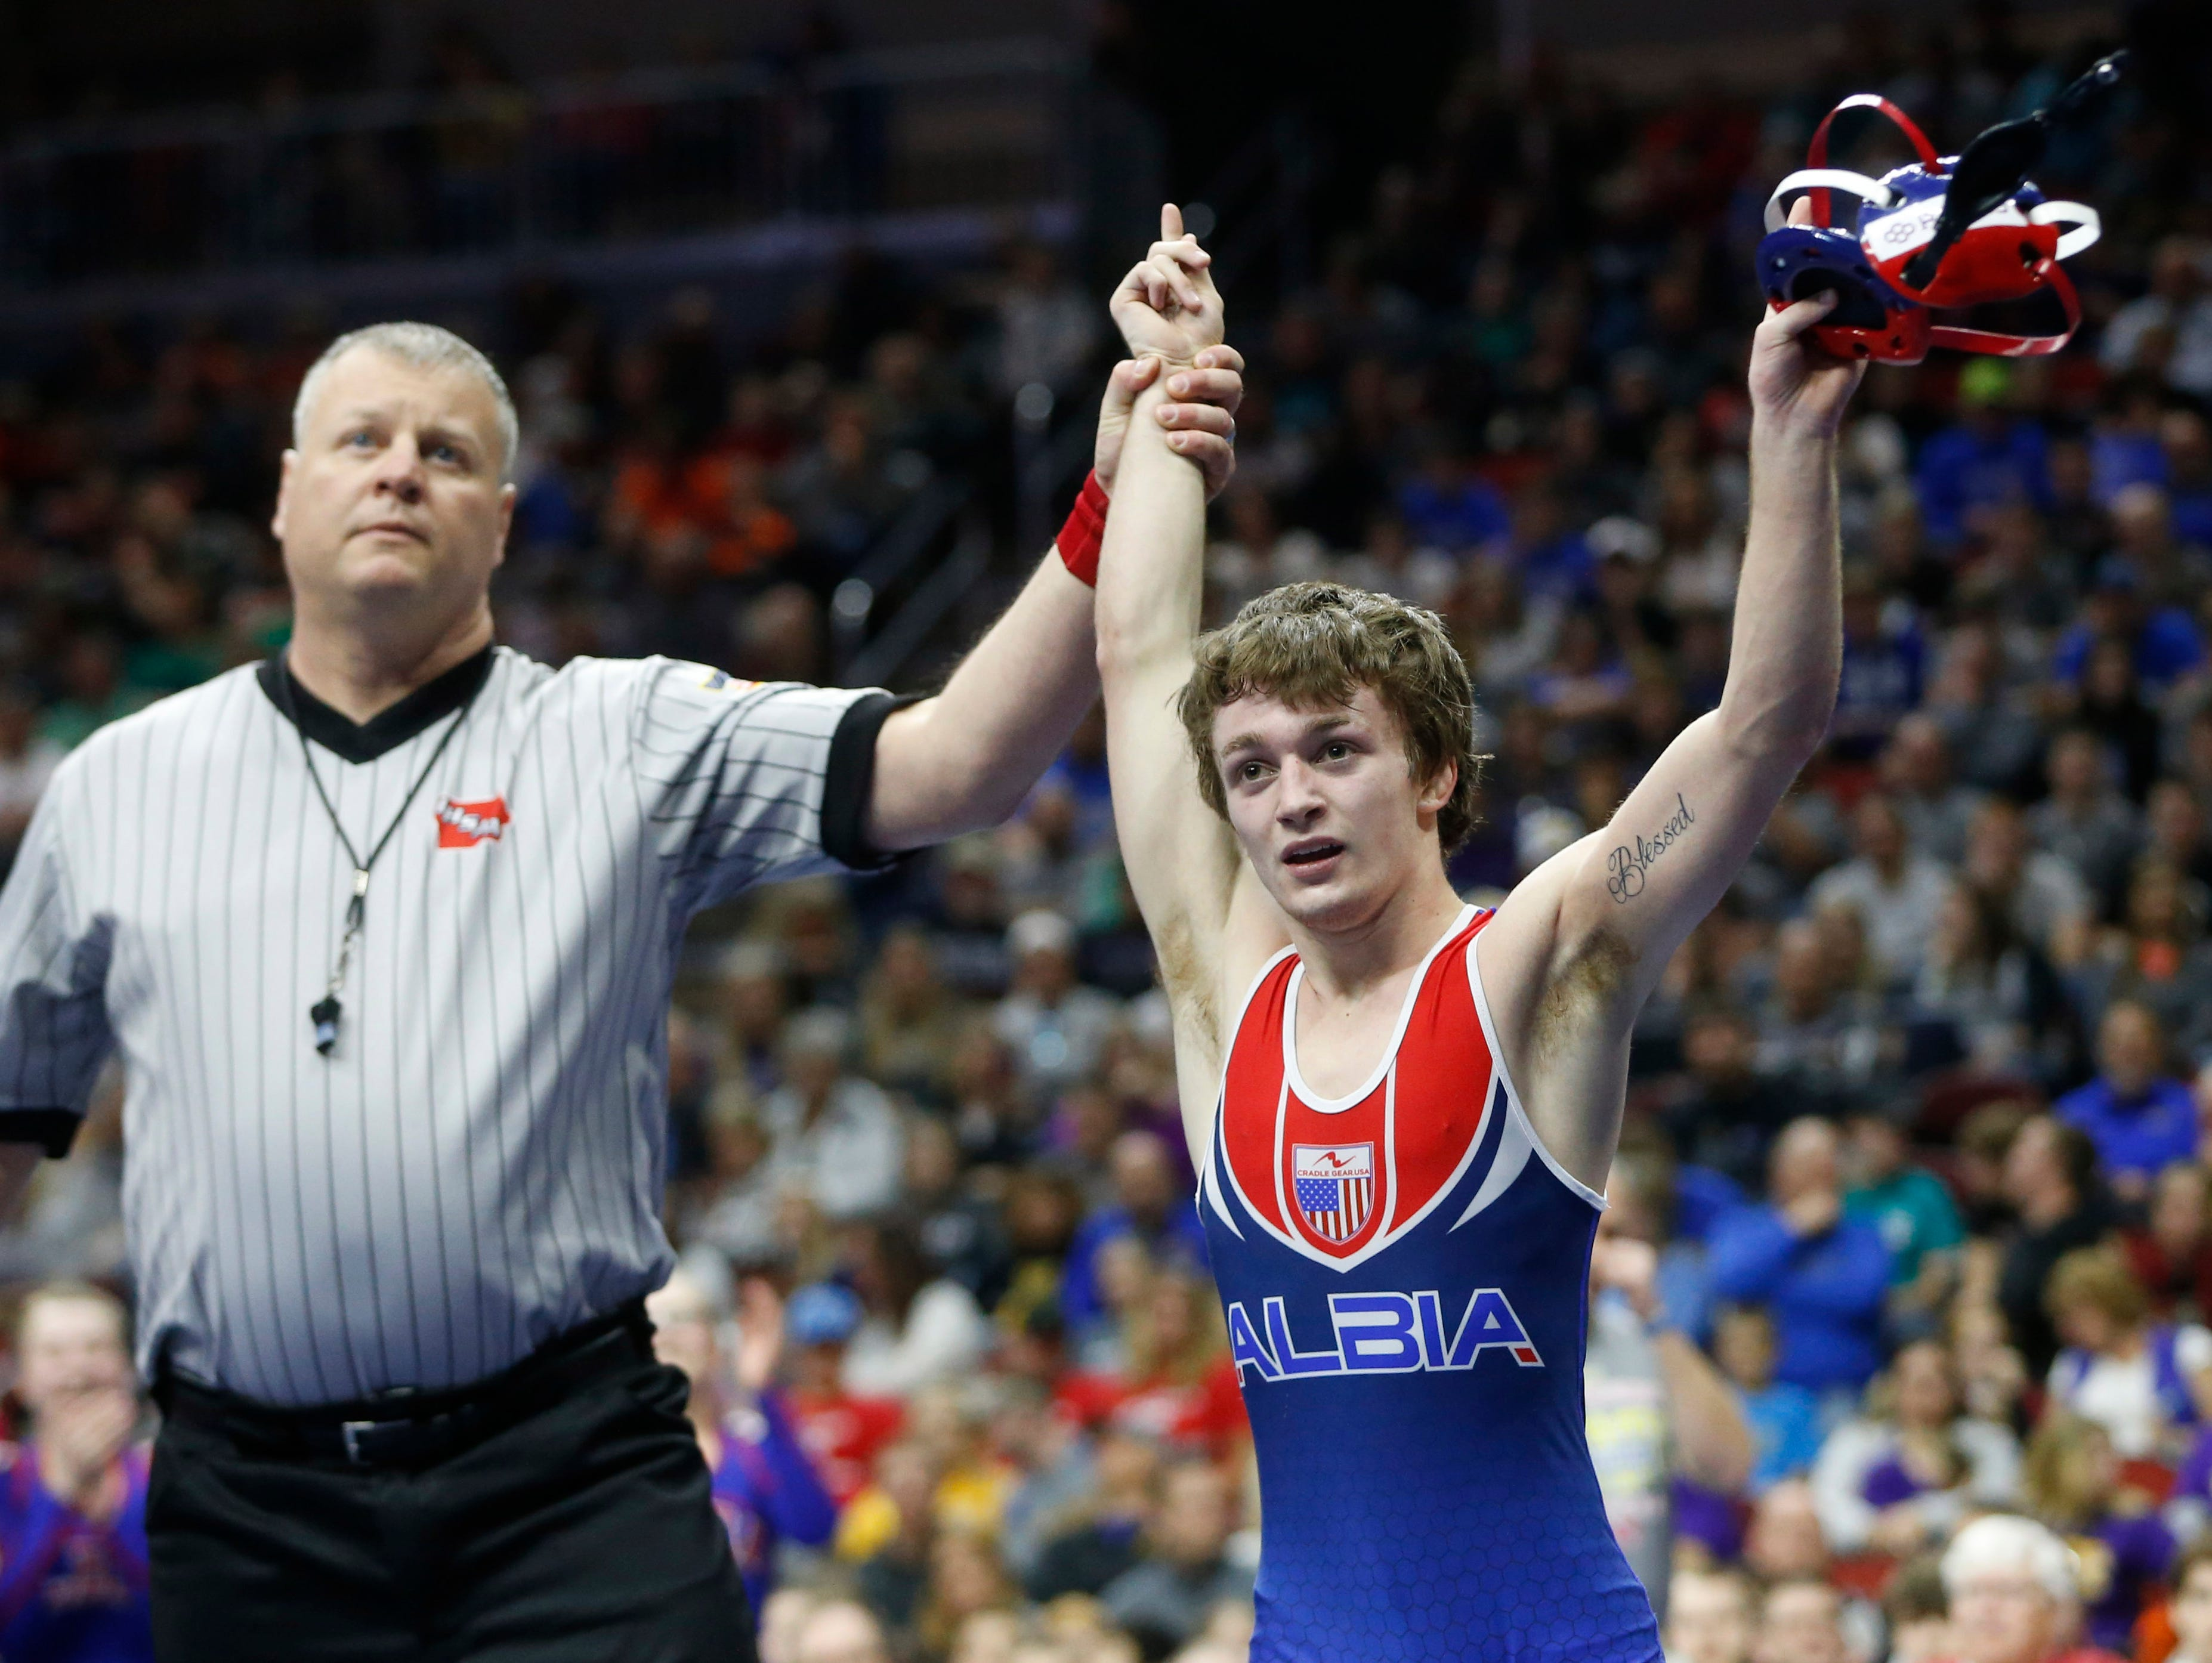 AlbiaÕs Aden Reeves wins the class 2A, 113-pound title match Saturday, Feb. 18, 2017 in the state wrestling finals at Wells Fargo Arena in Des Moines.